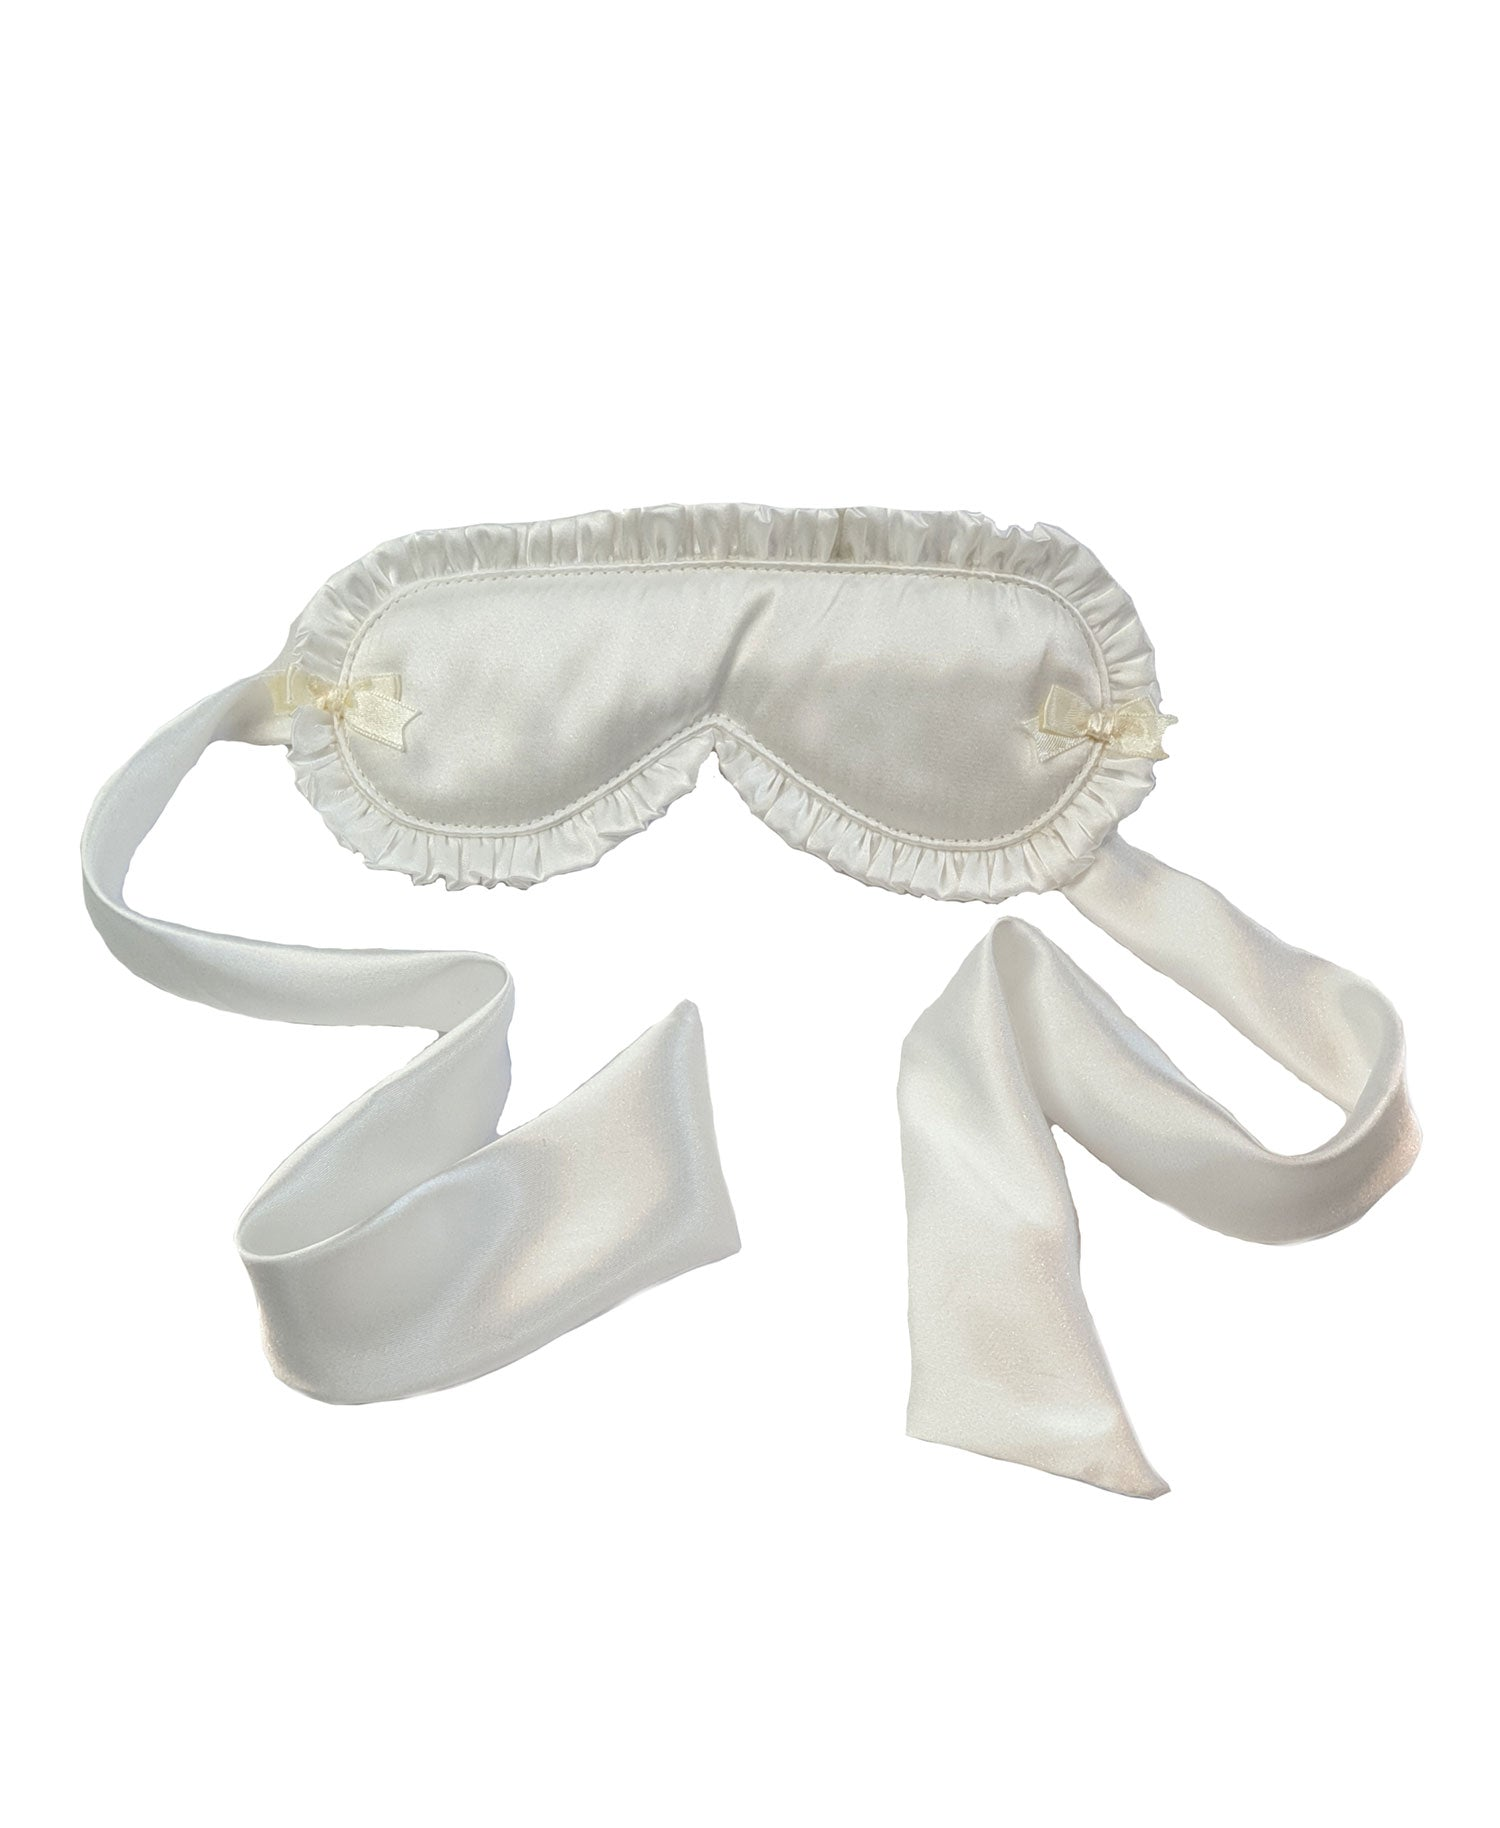 Silky Satin Tie Ruffled Eyemask and Lace